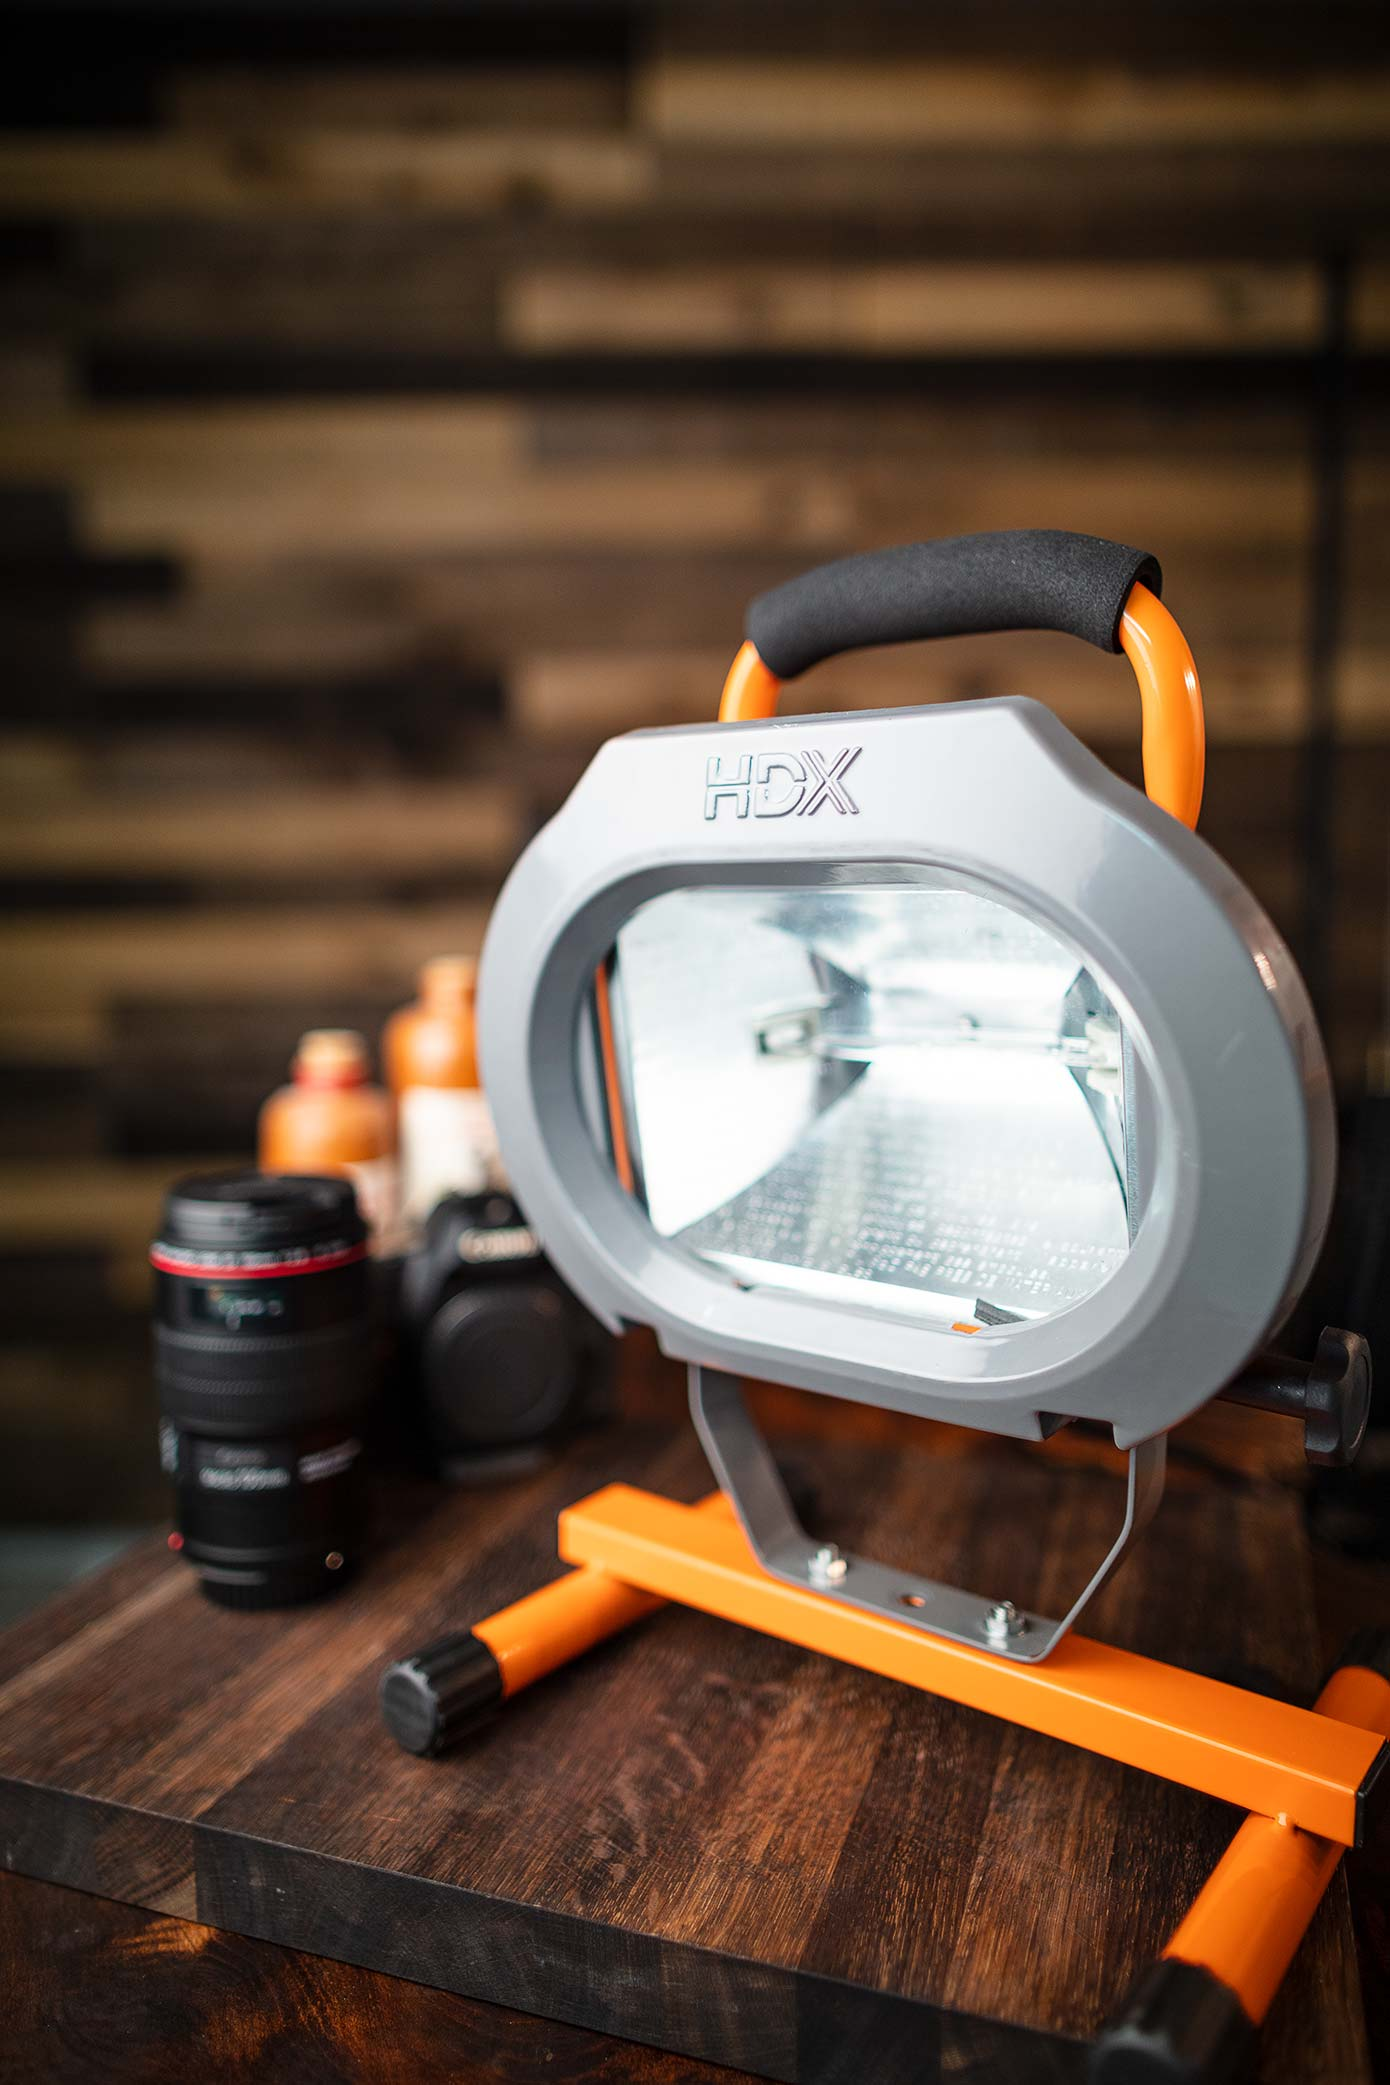 Food Photography Lighting That is Stunning And Cheap - We Eat Together